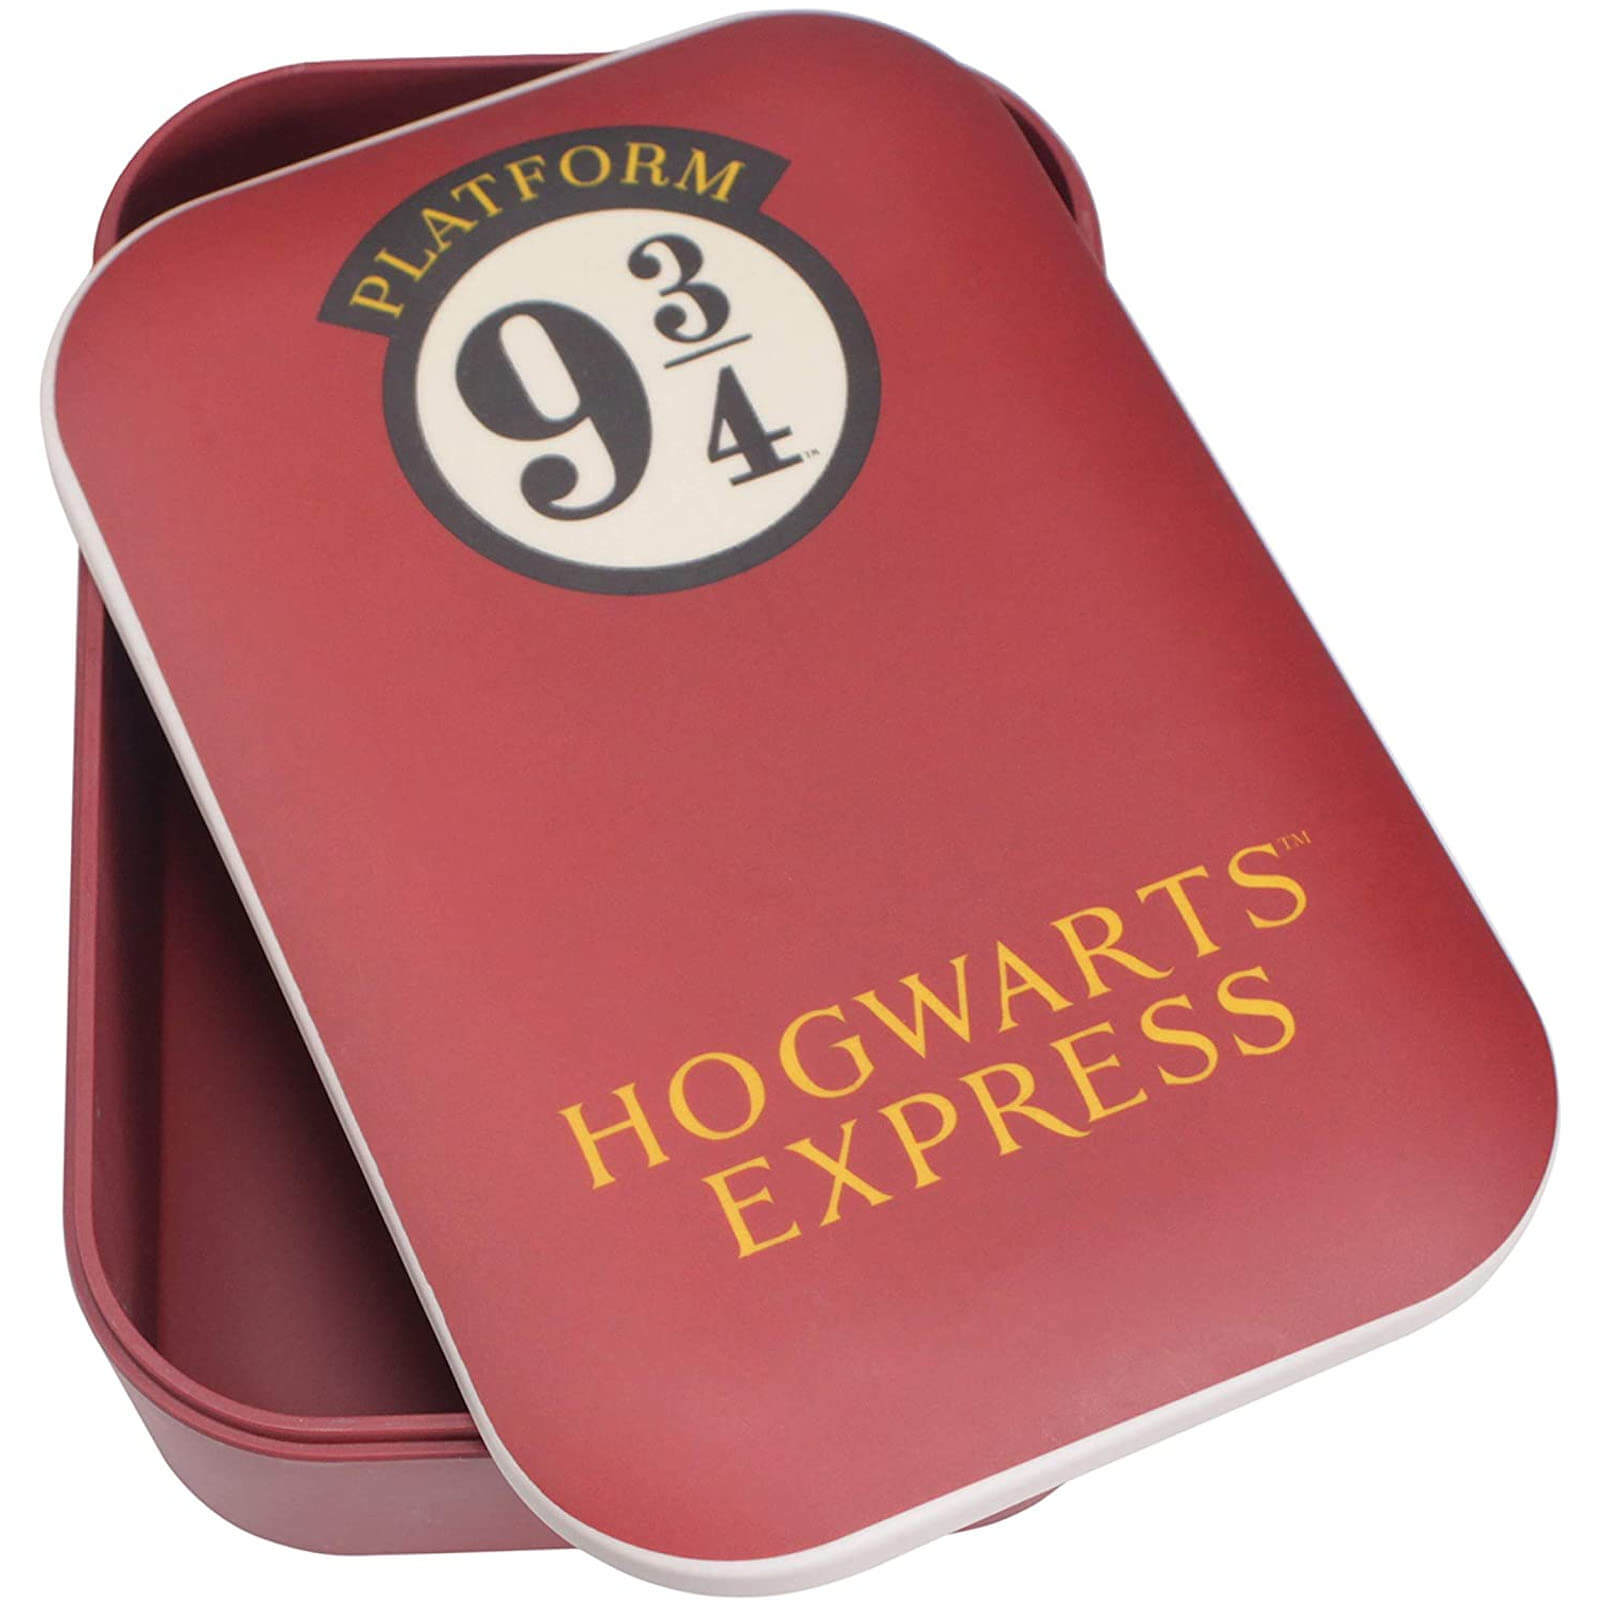 Harry Potter Platform 9 3/4s Money Box